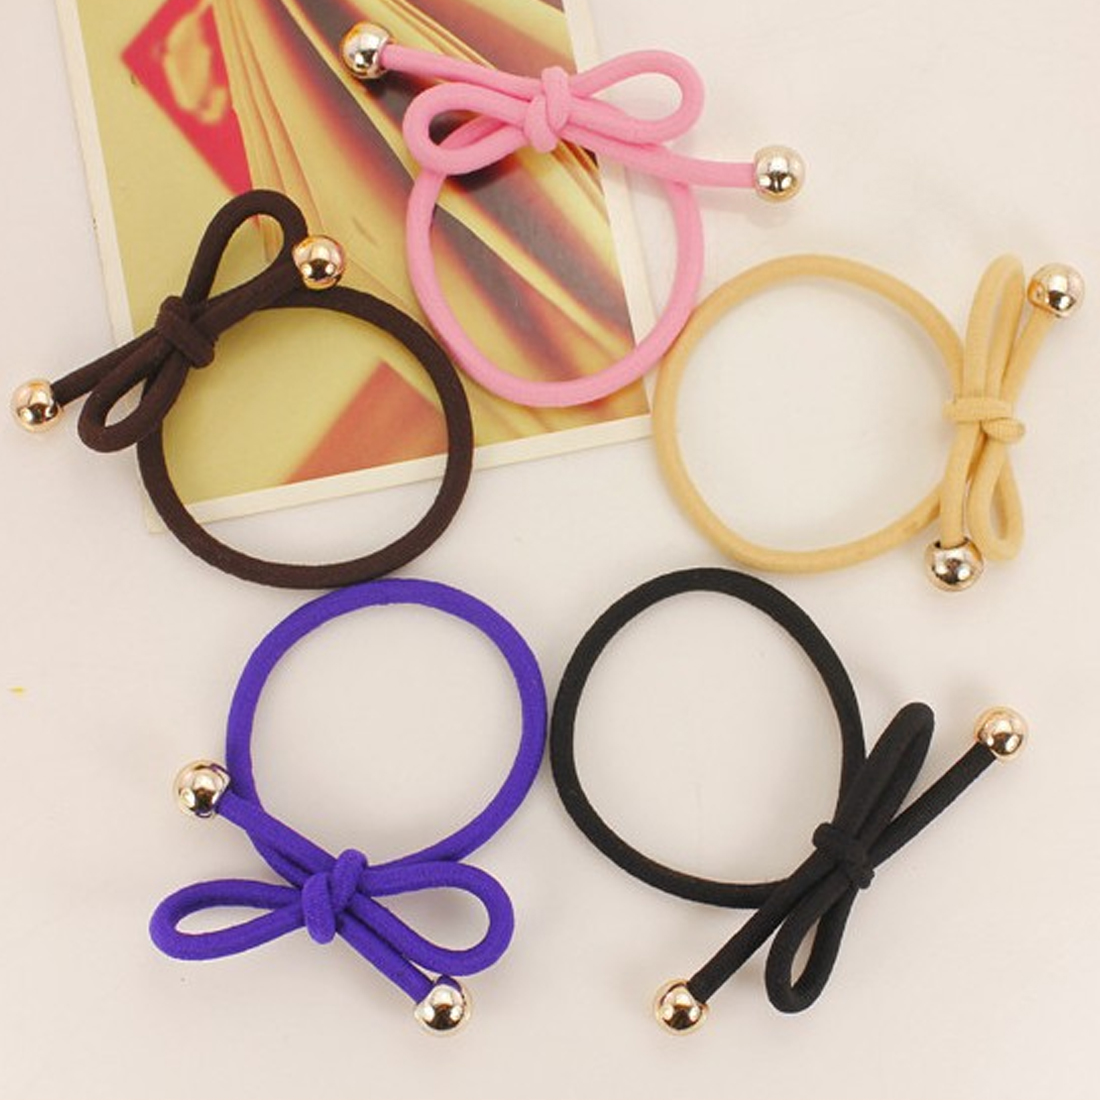 10pcs lot Girls Elastic Hair Band Bowknot Gold Plated Beads Gum Scrunchy Rubber Band Headwear Hair Accessories for Women in Women 39 s Hair Accessories from Apparel Accessories